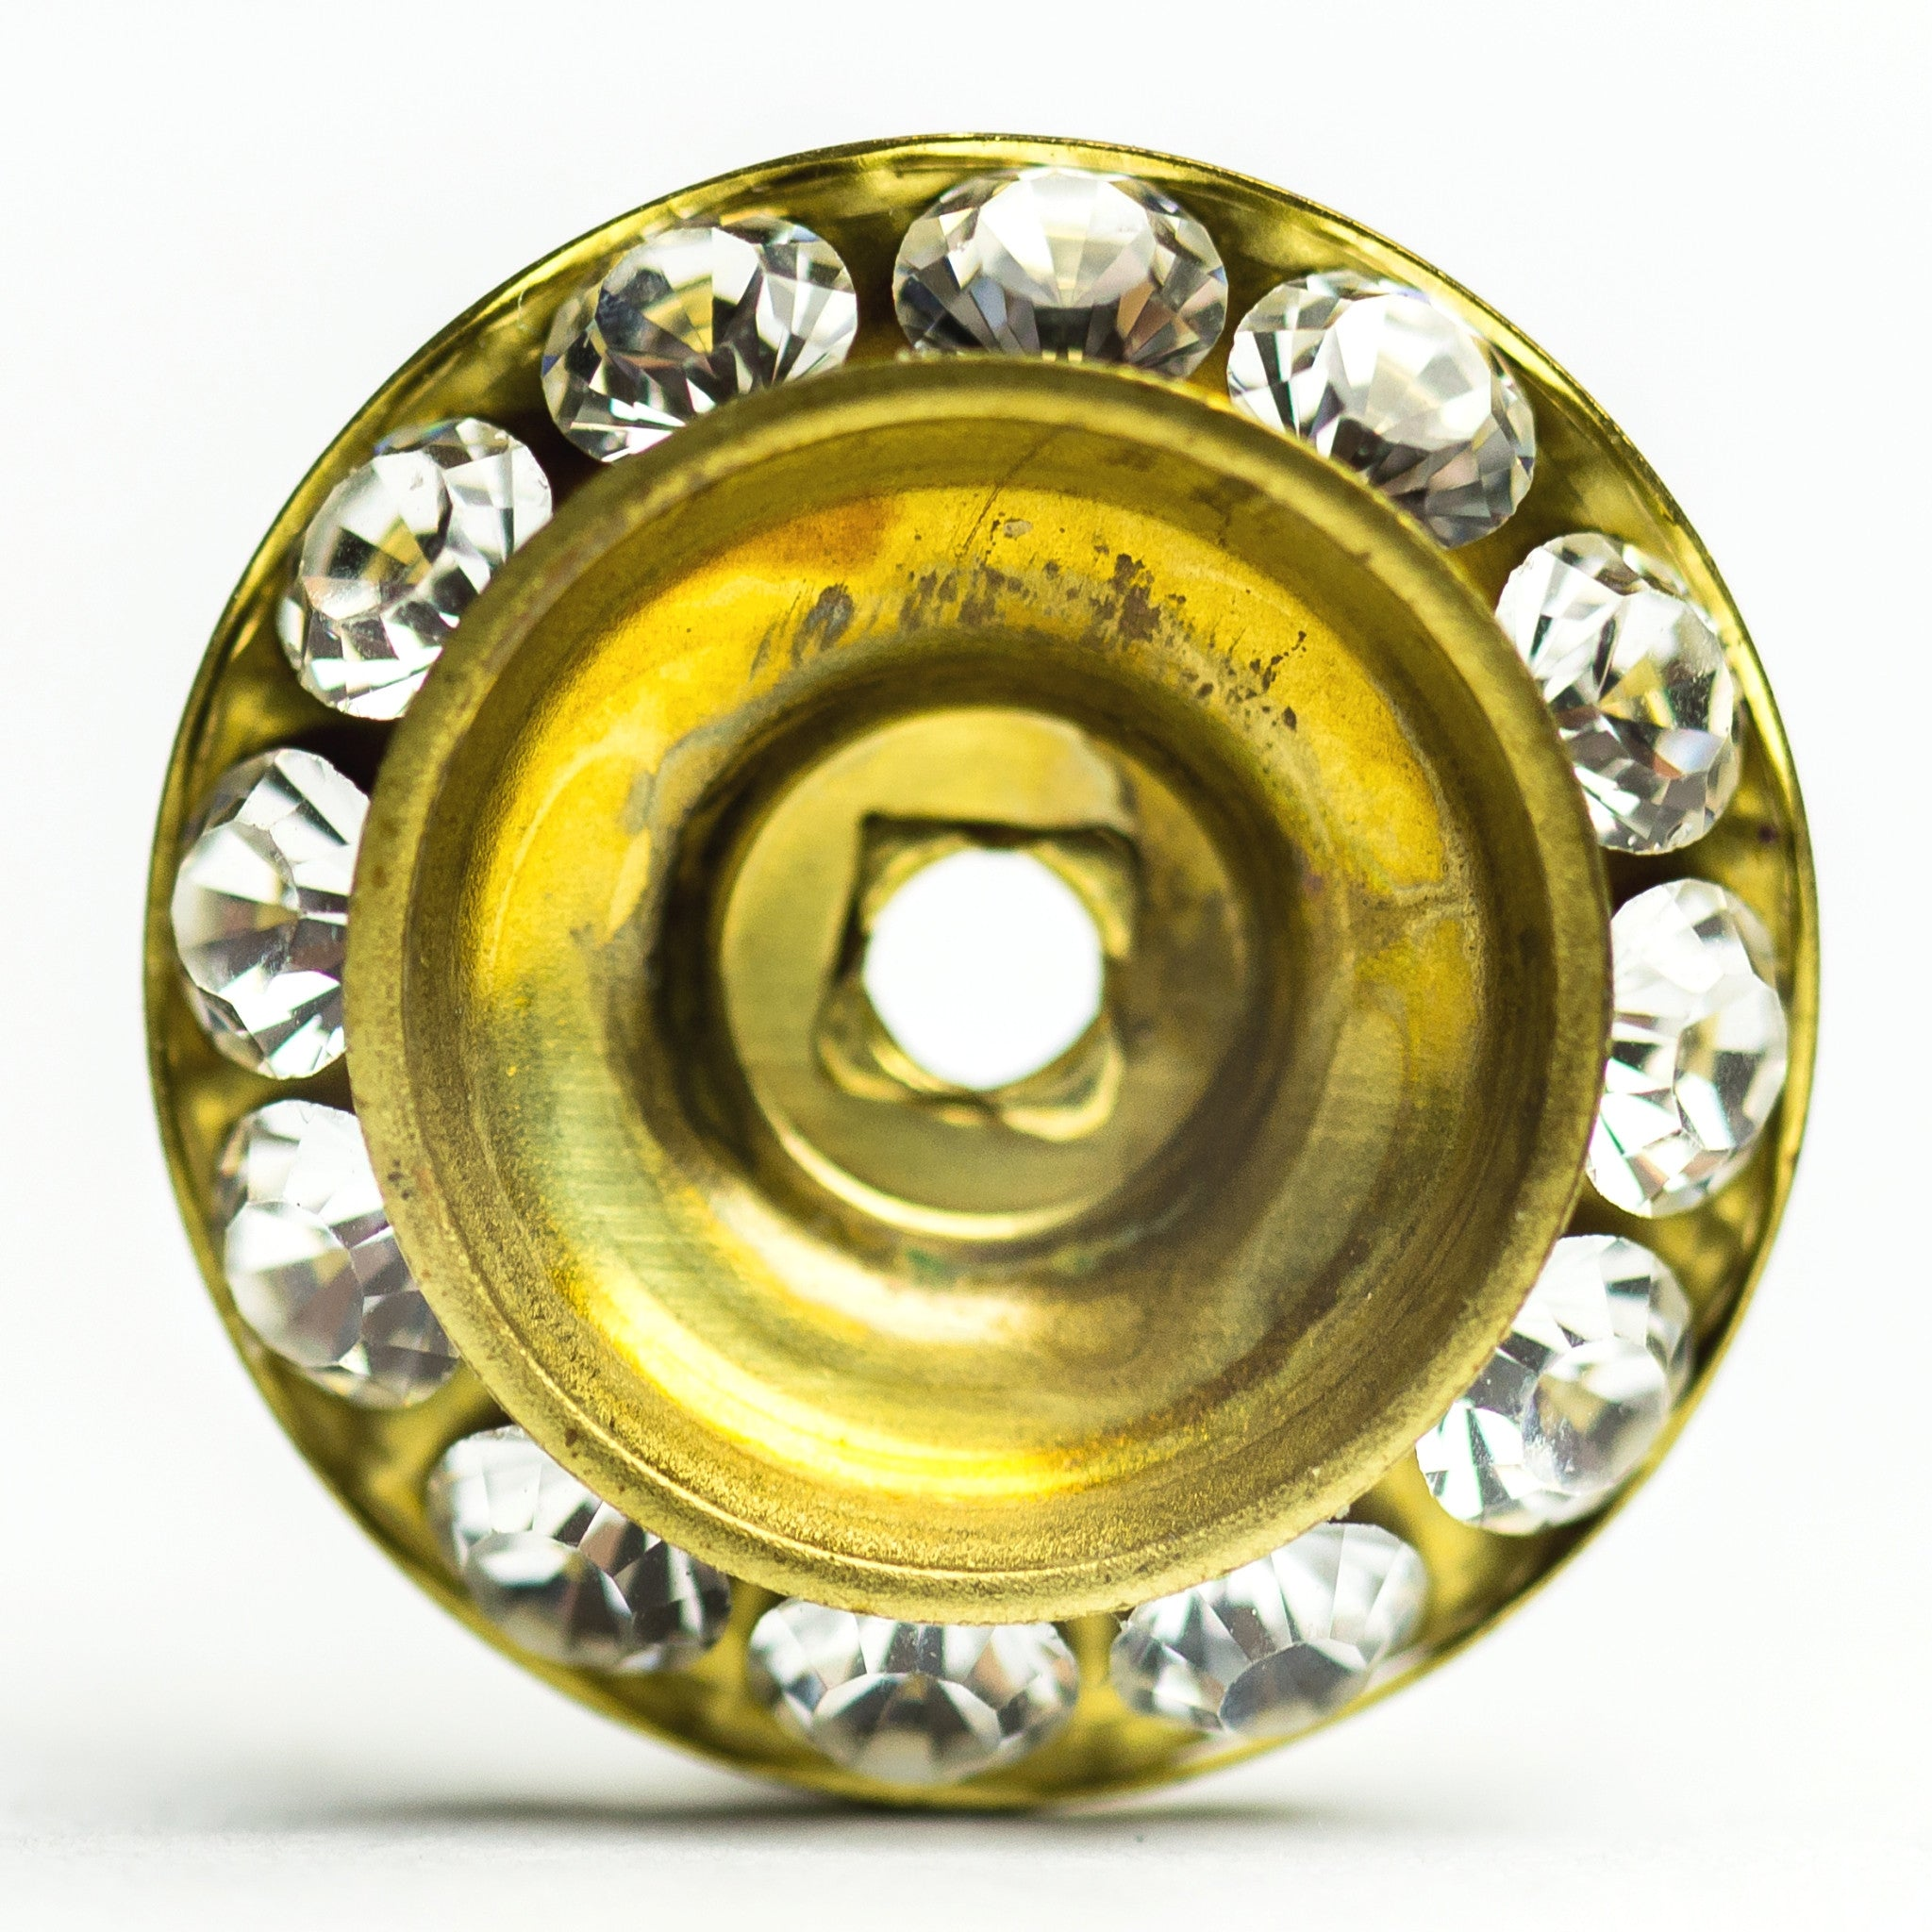 18MM Slant Rondel Crystal/Brass (6 pieces)